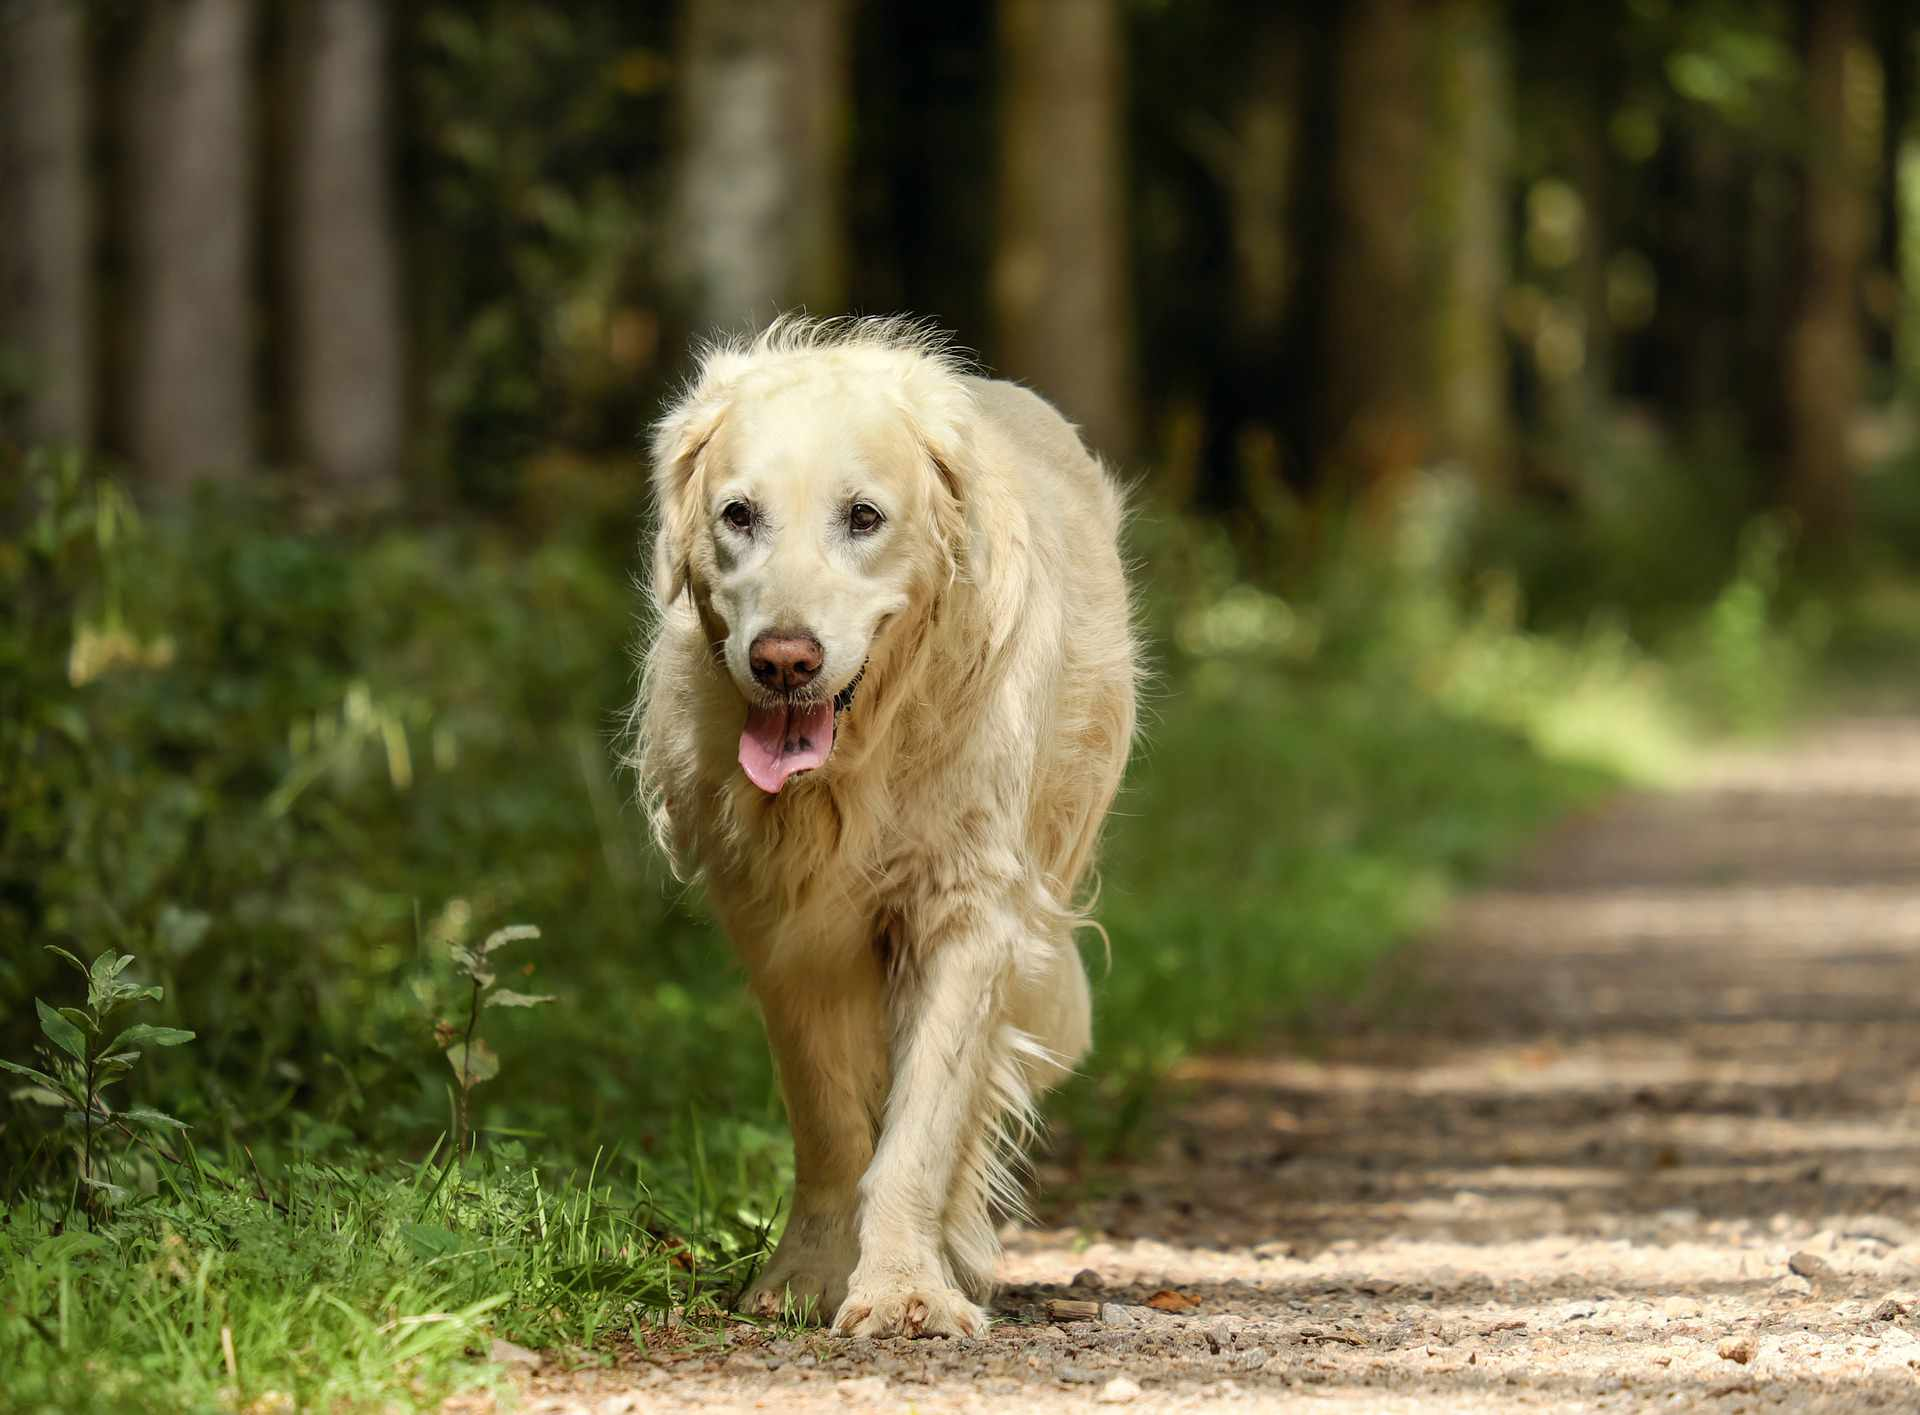 A dog walking by grass.